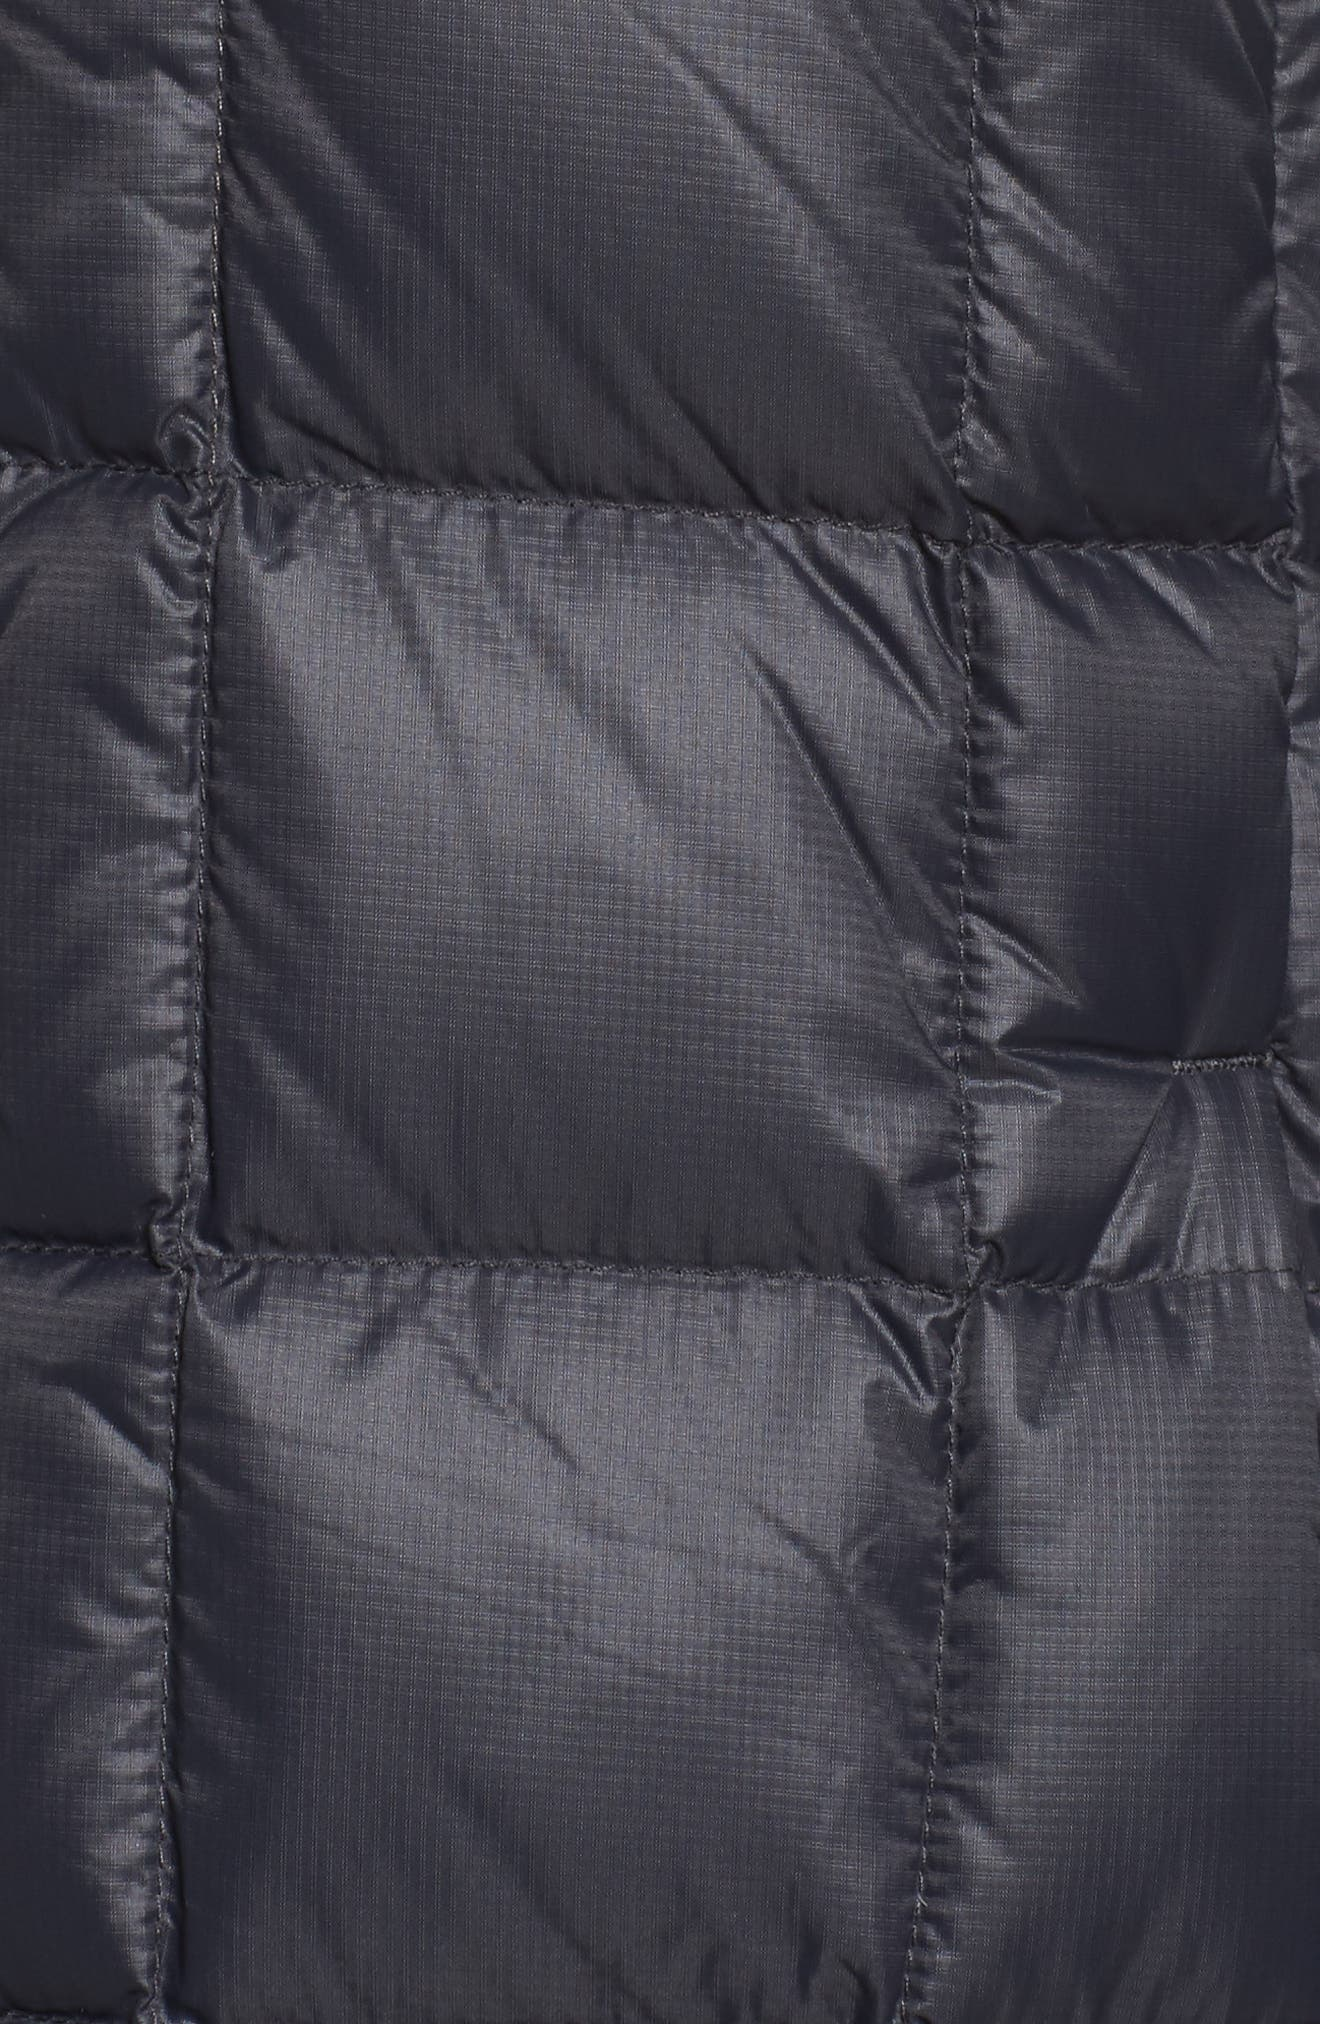 AK Baker Waterproof Quilted Down Insulator Jacket with Removable Hood,                             Alternate thumbnail 6, color,                             True Black